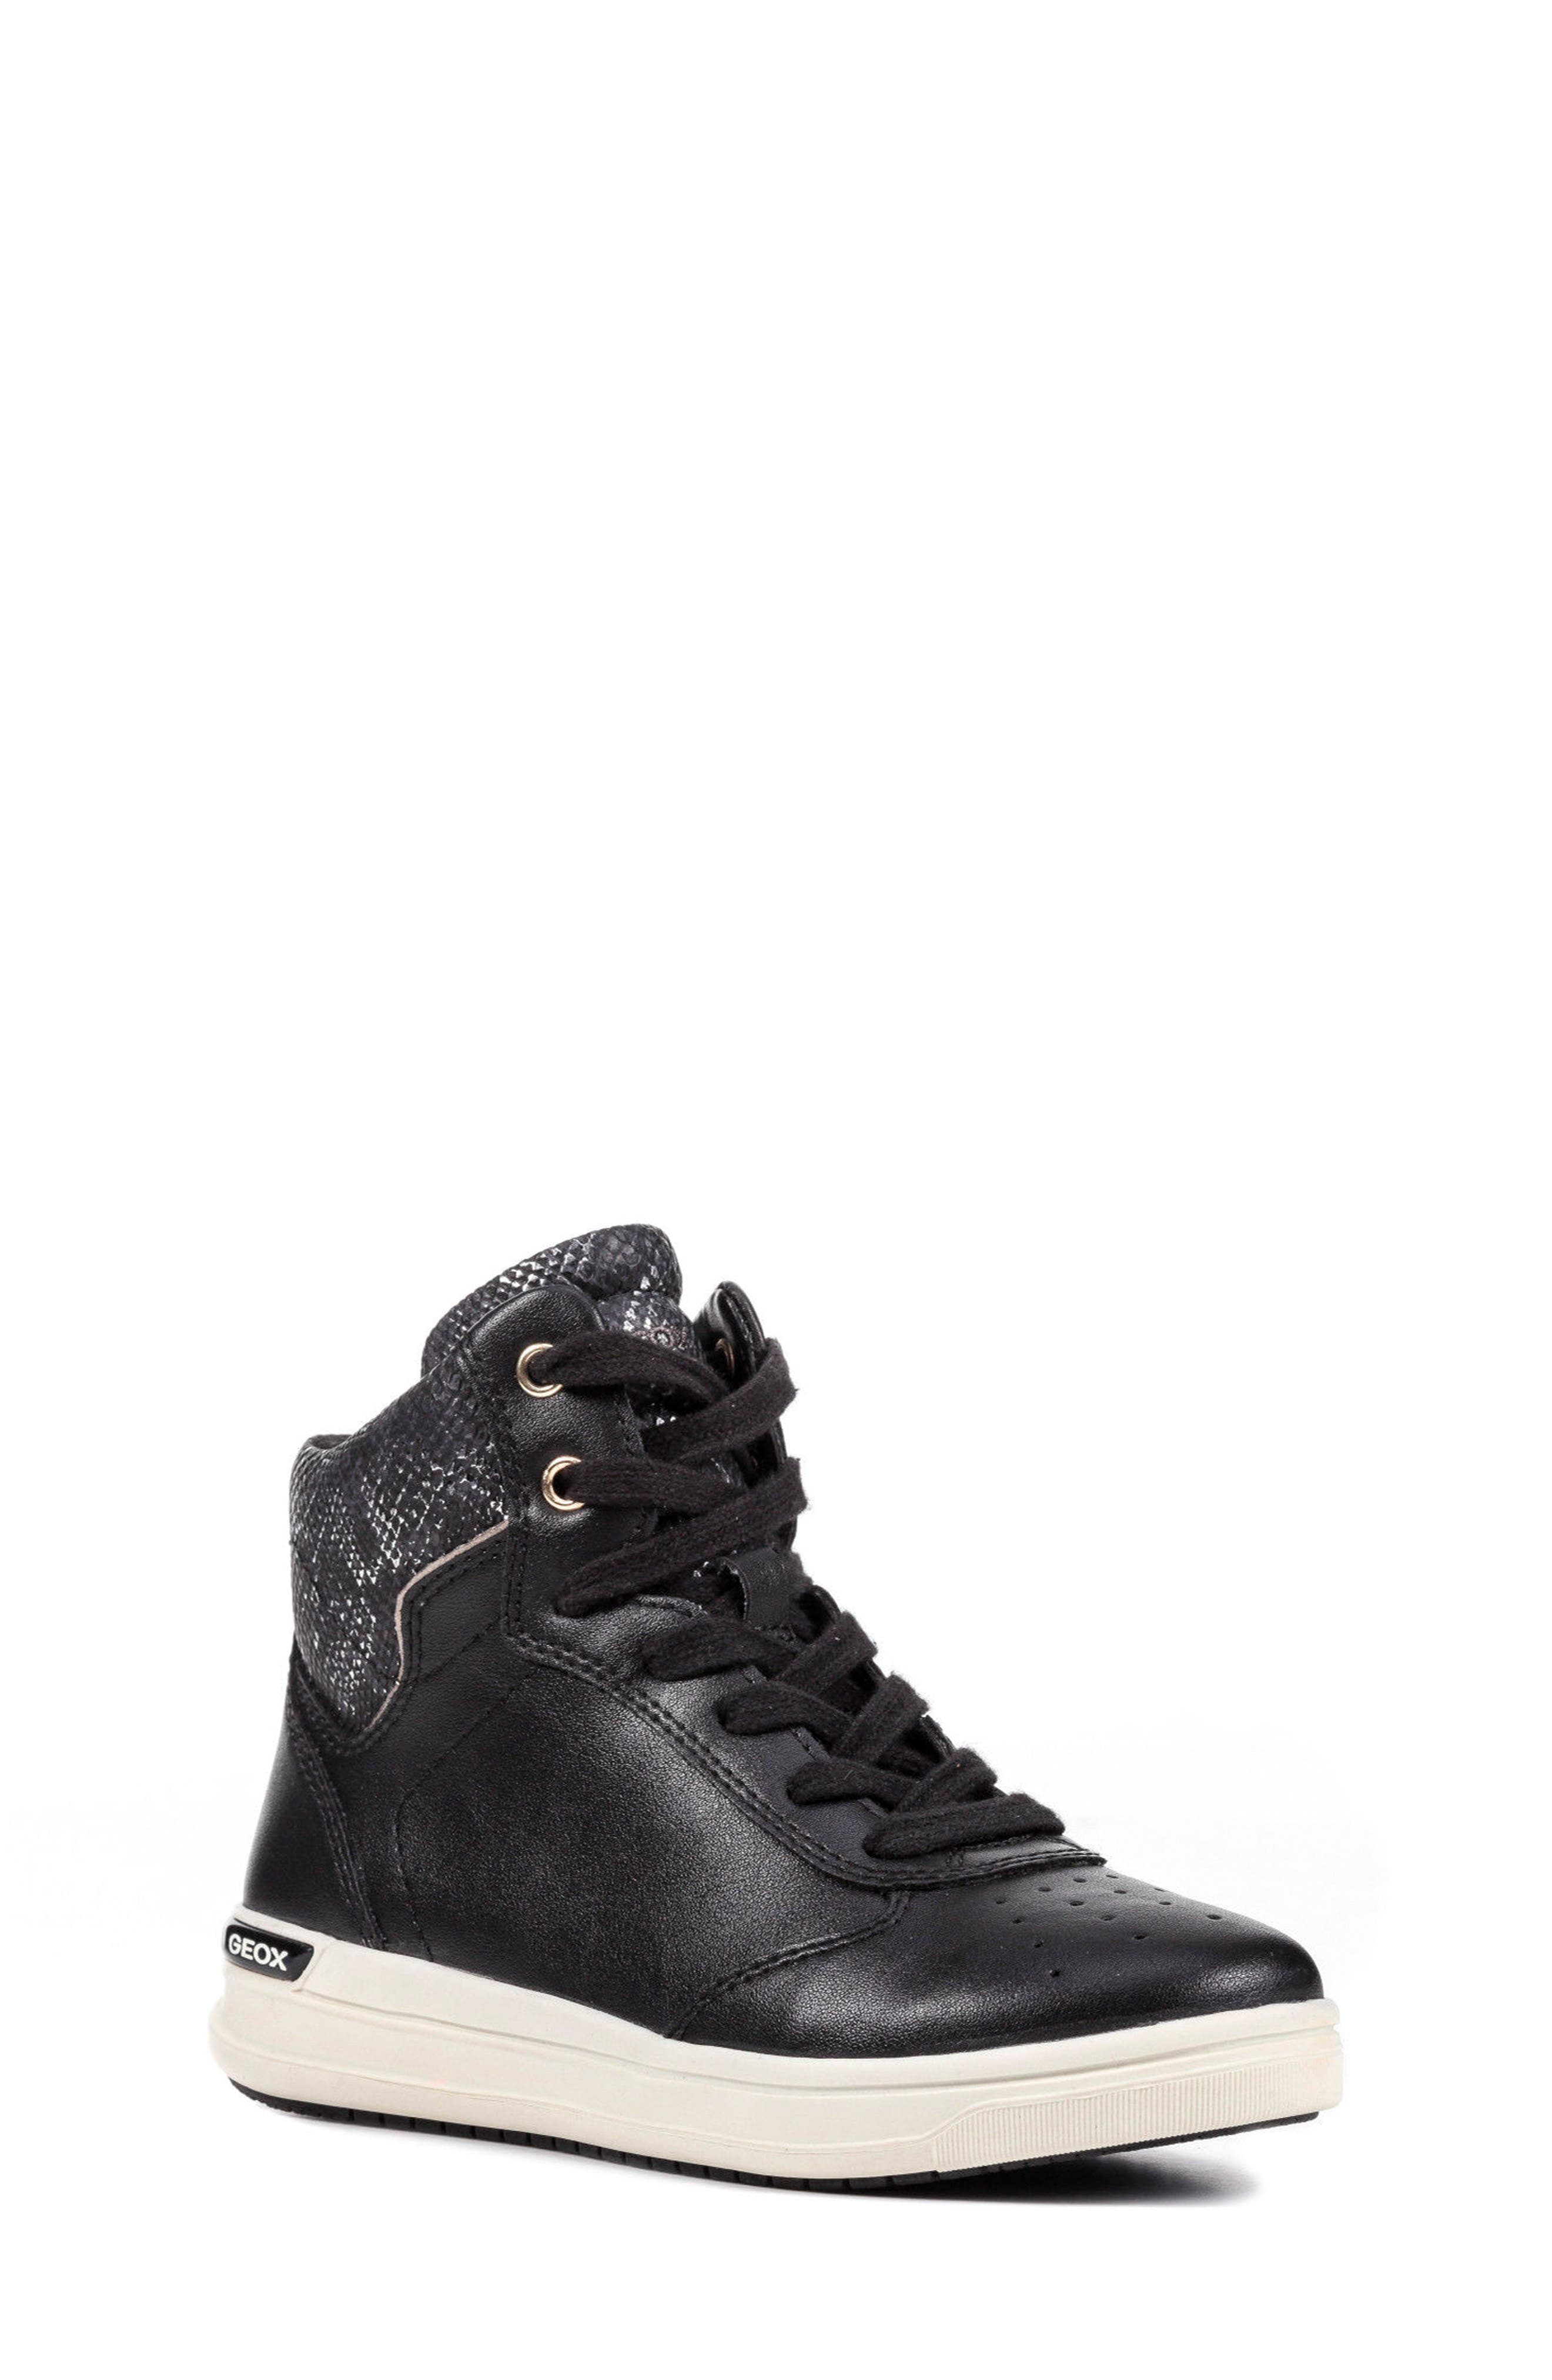 Cave Up Girl High Top Sneaker,                         Main,                         color, 001